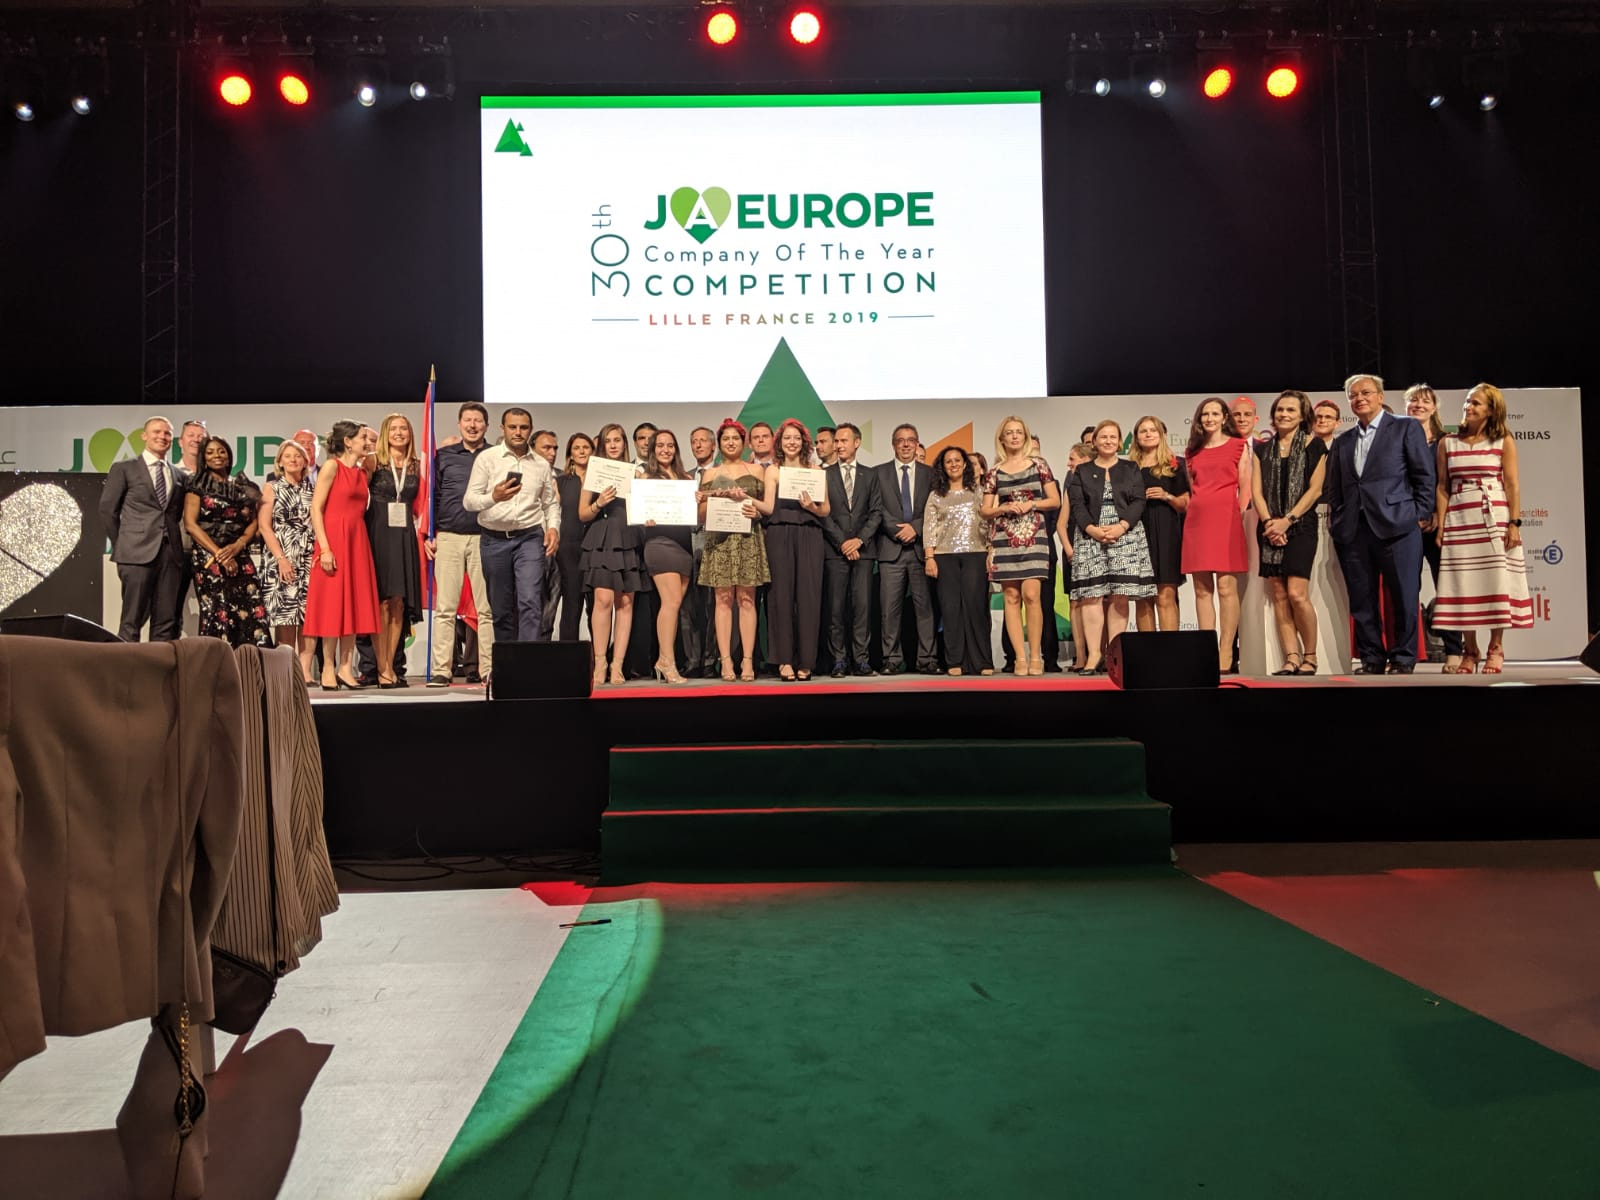 All winning teams at the JA Europe Company of the Year Competition 2019.